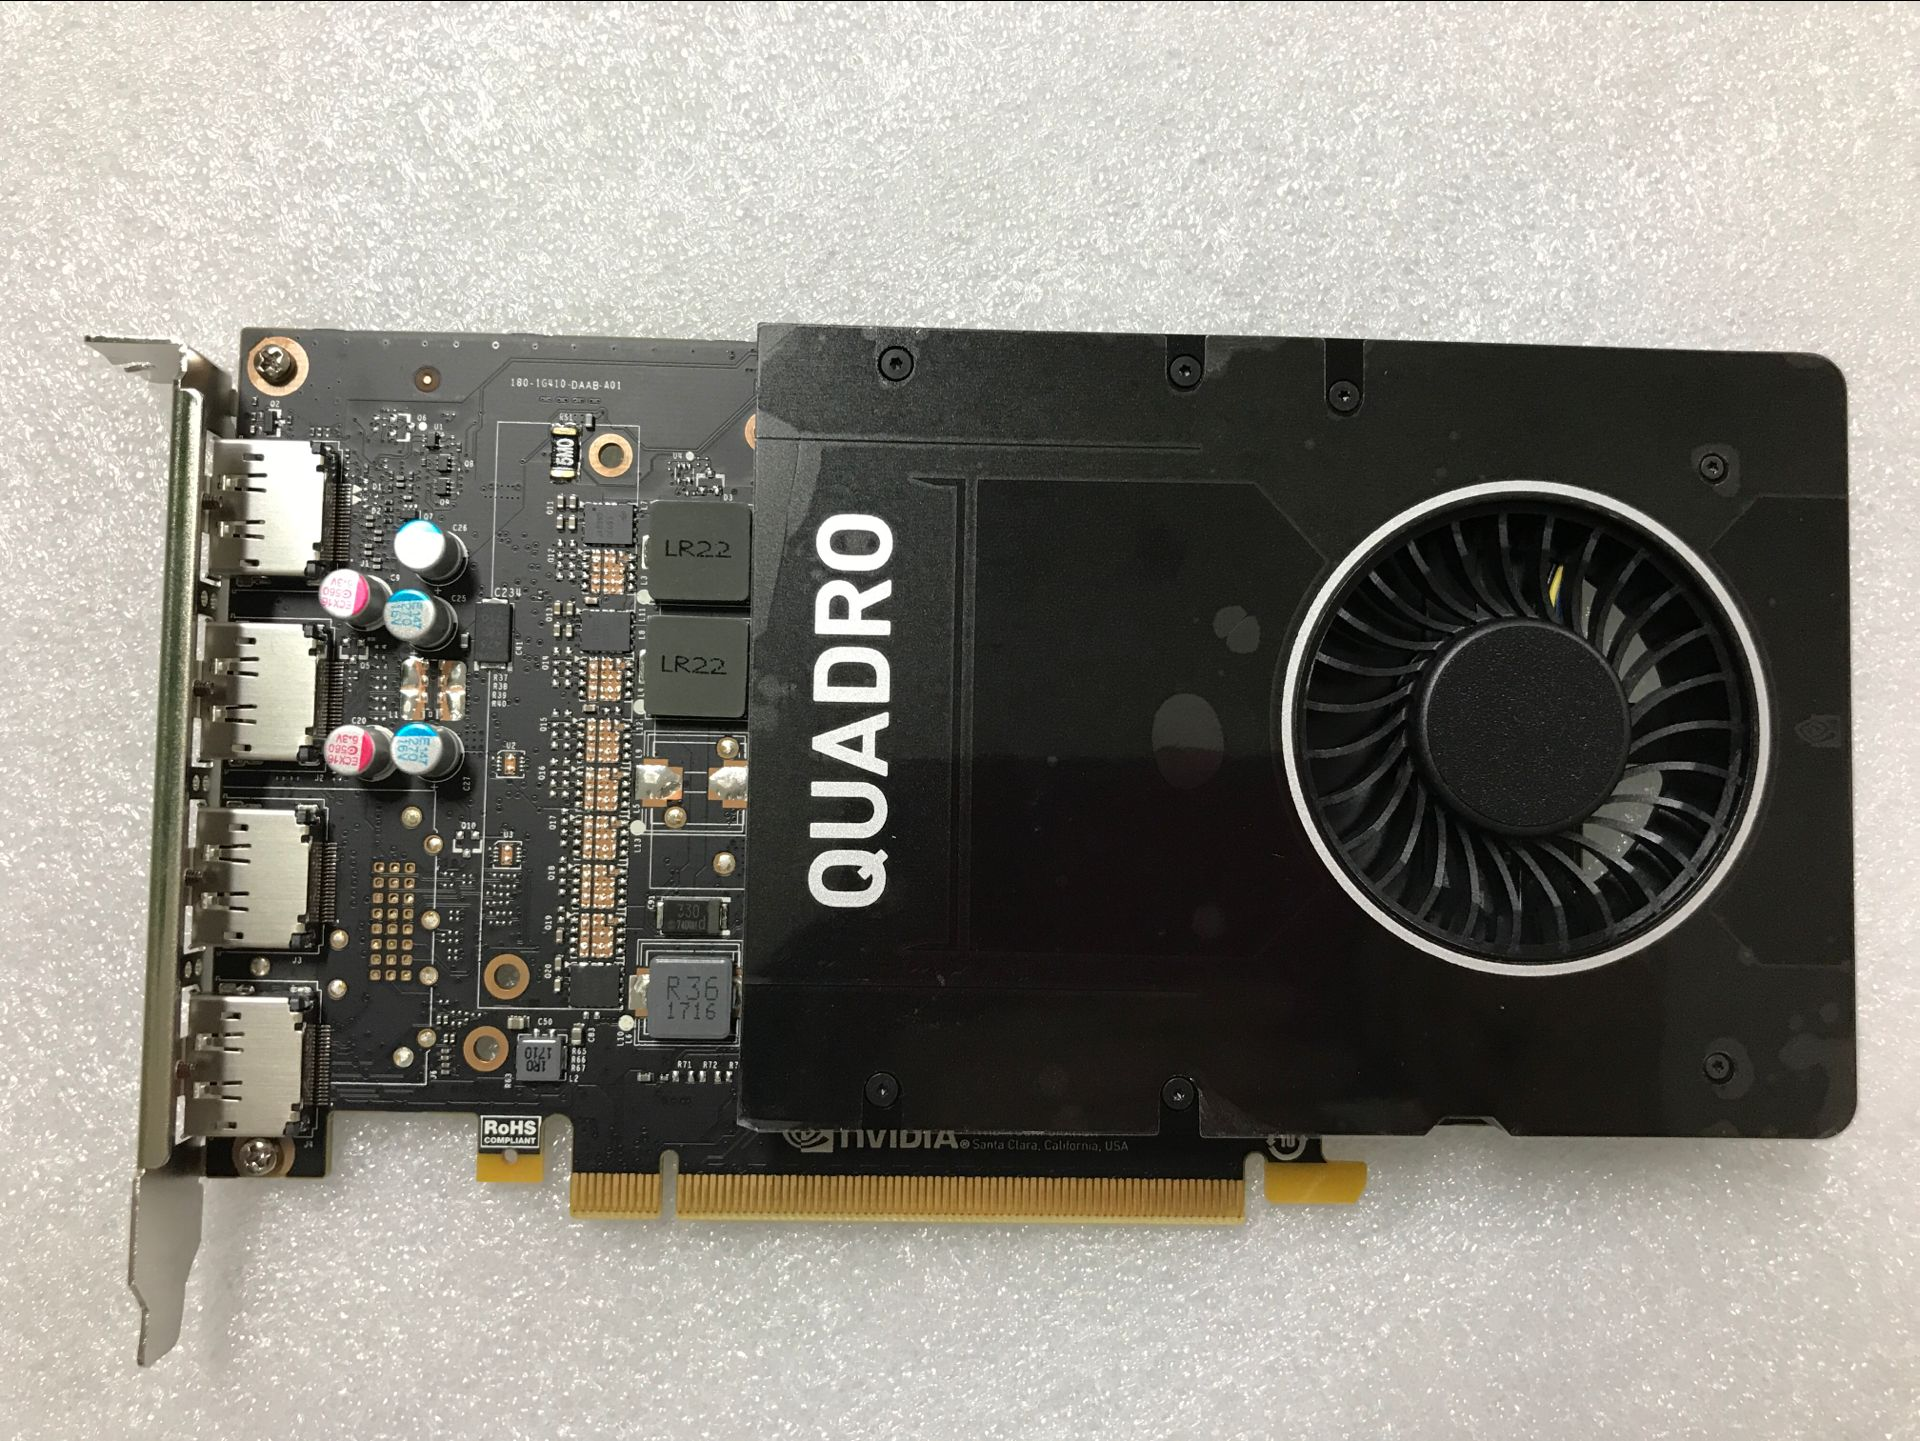 Quadro P2000 5G   Design 3D Modeling Rendering Workstation Professional Graphics Card, Warranty Three Years